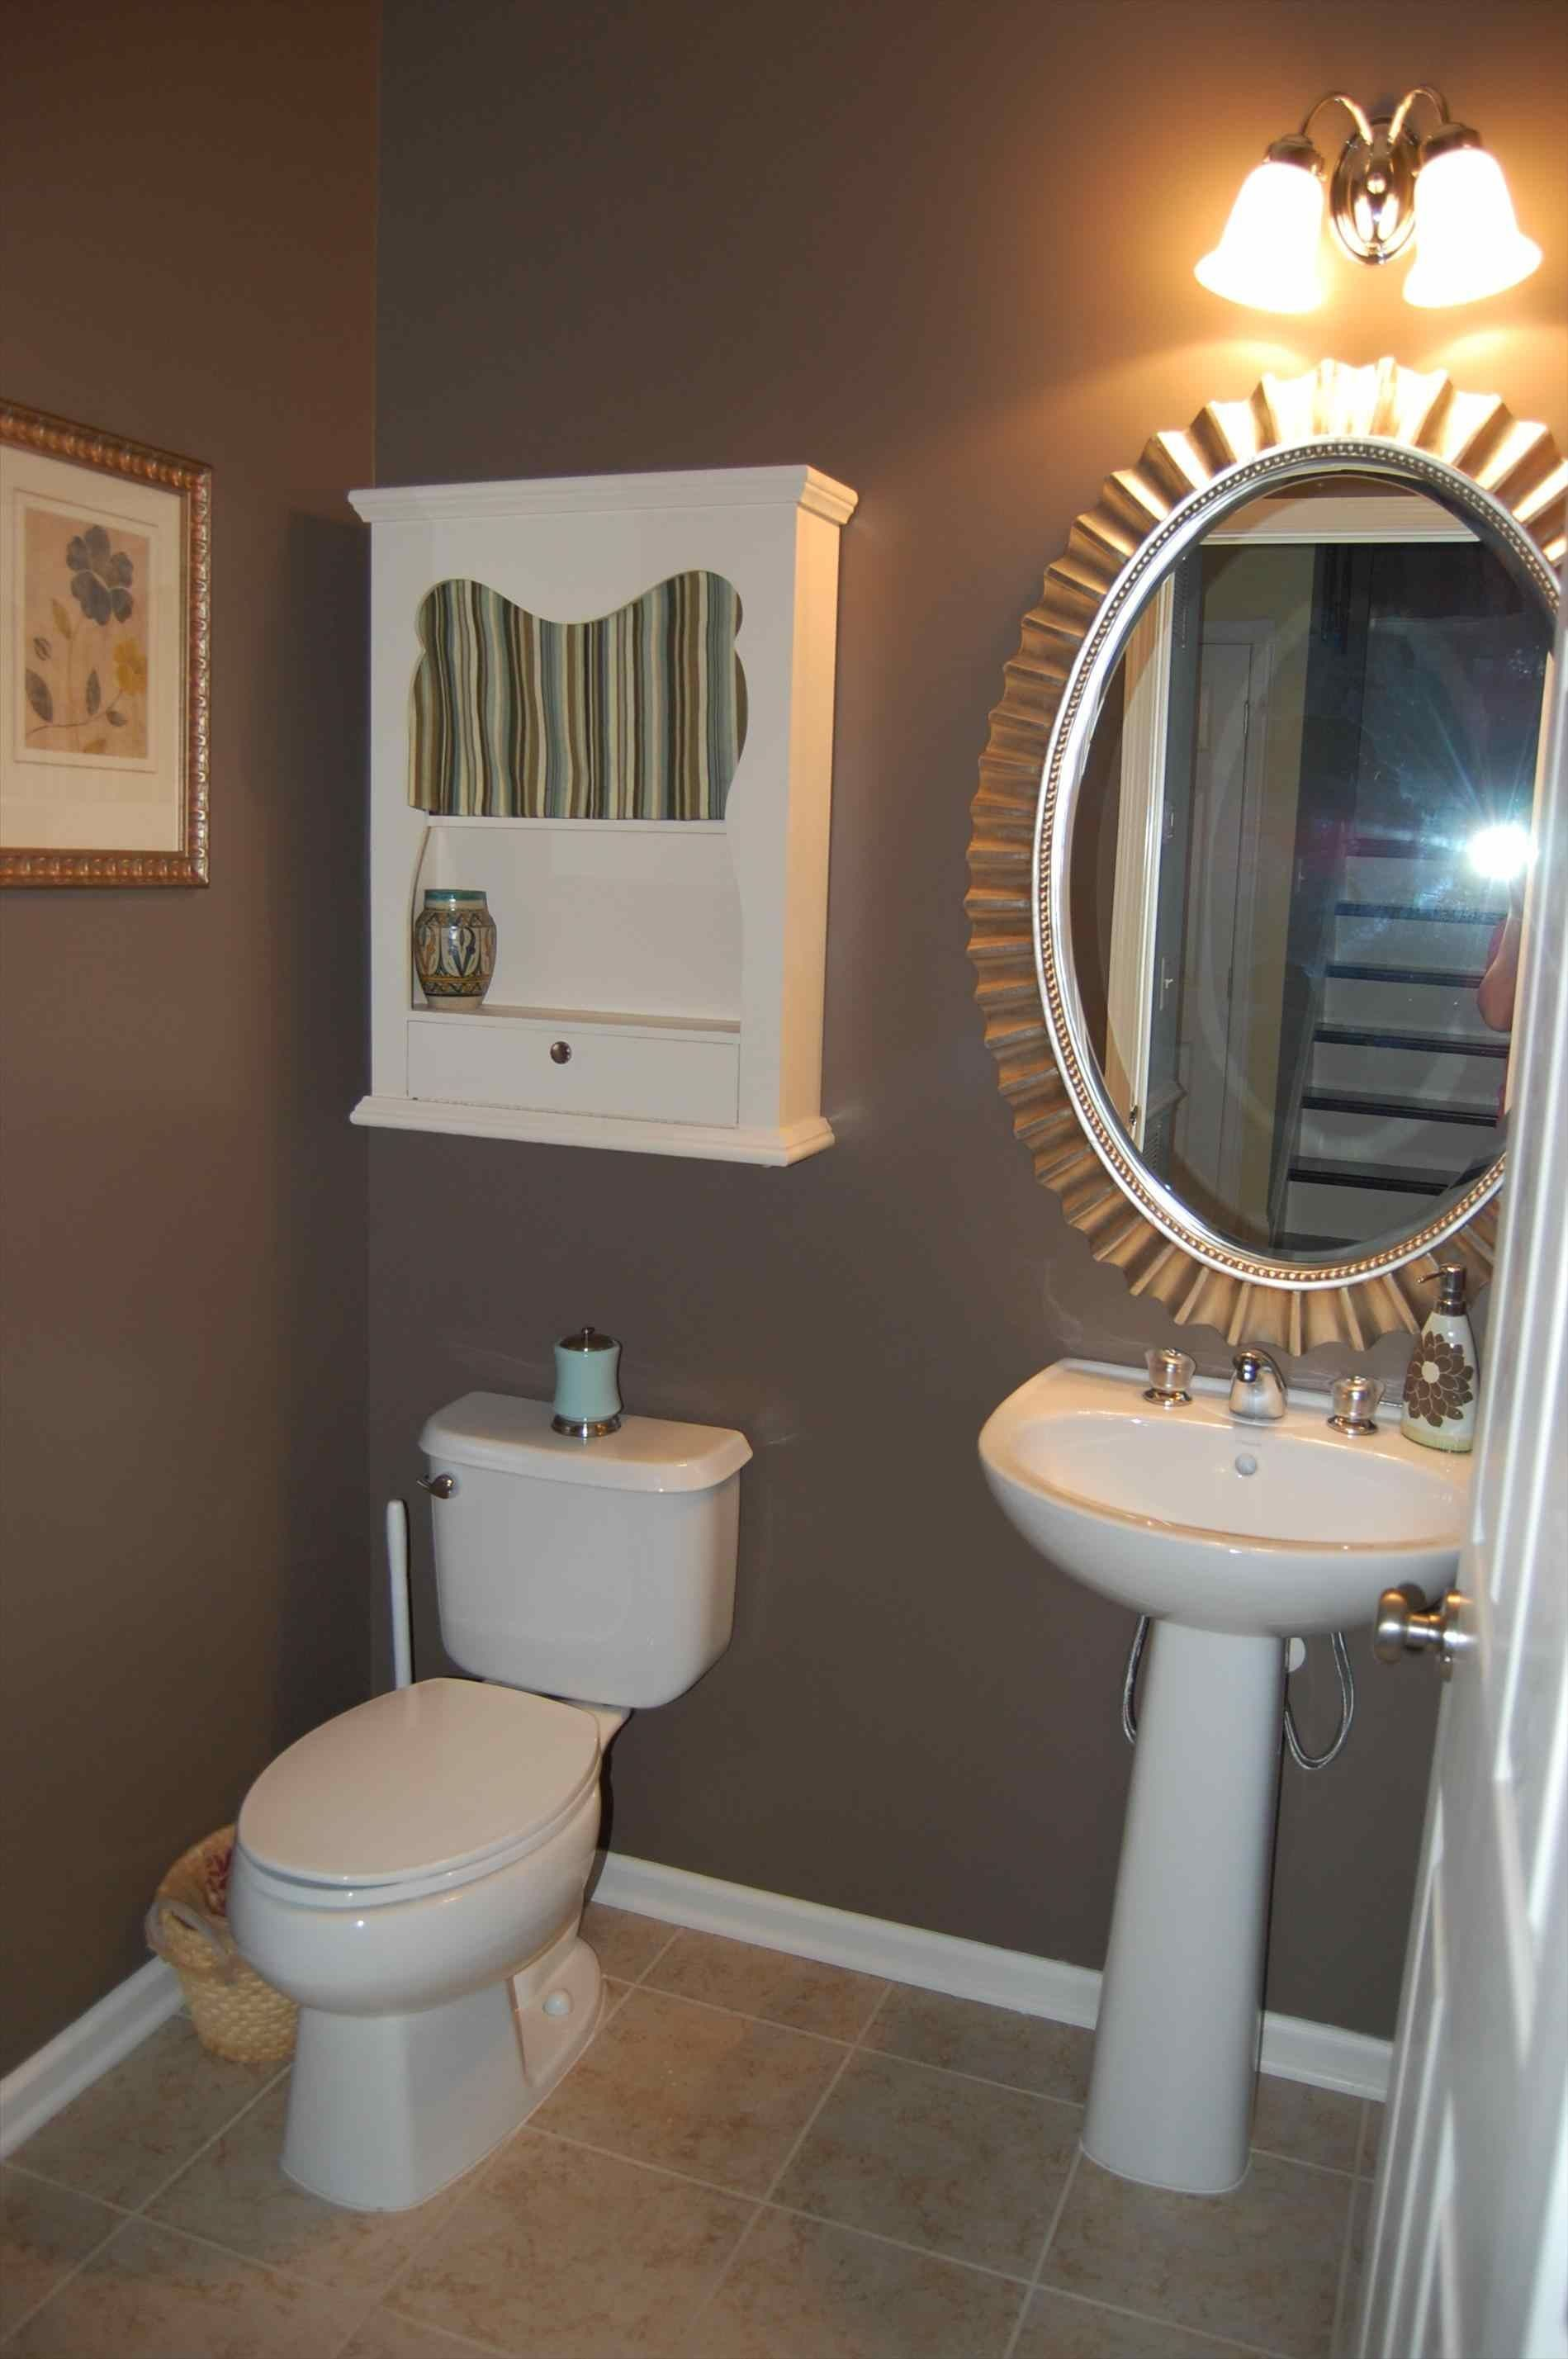 Paint Colors For A Small Bathroom With No Natural Light With